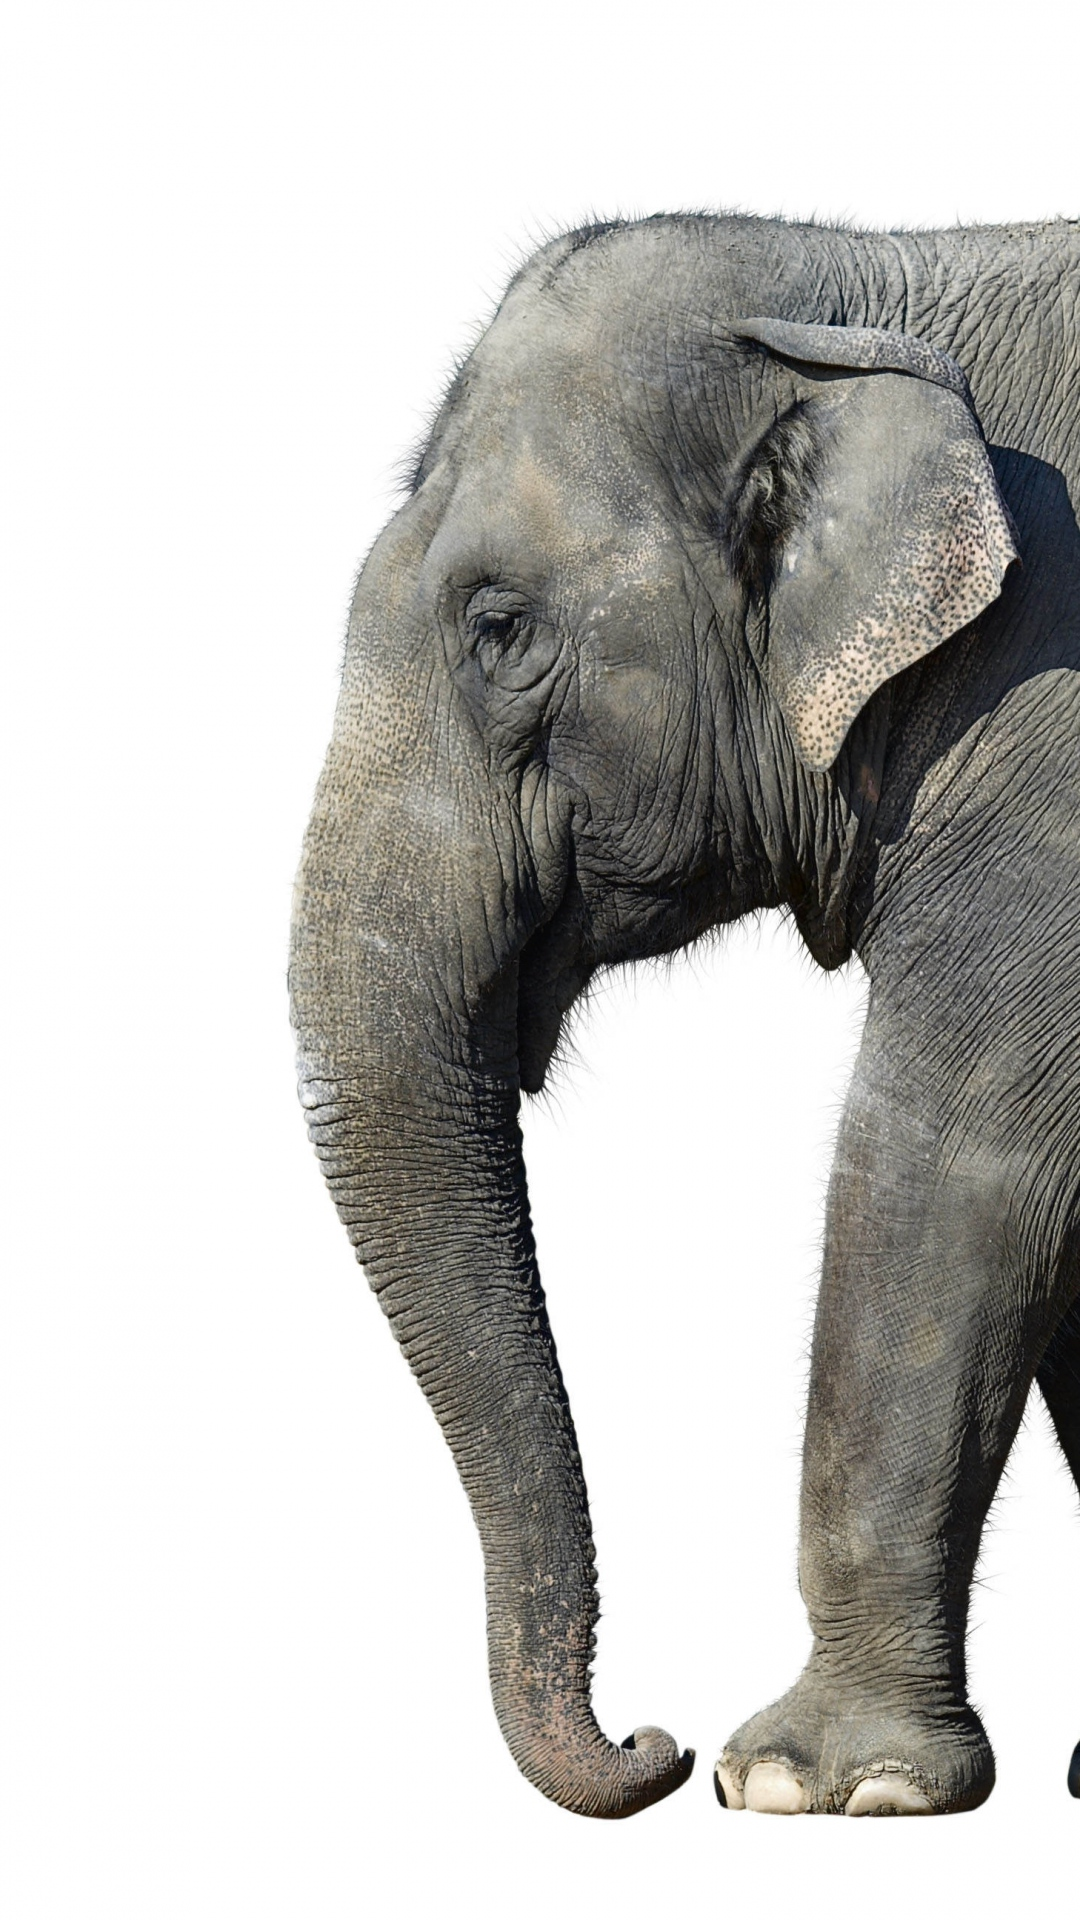 Download elephant iphone wallpaper gallery - Elephant background iphone ...